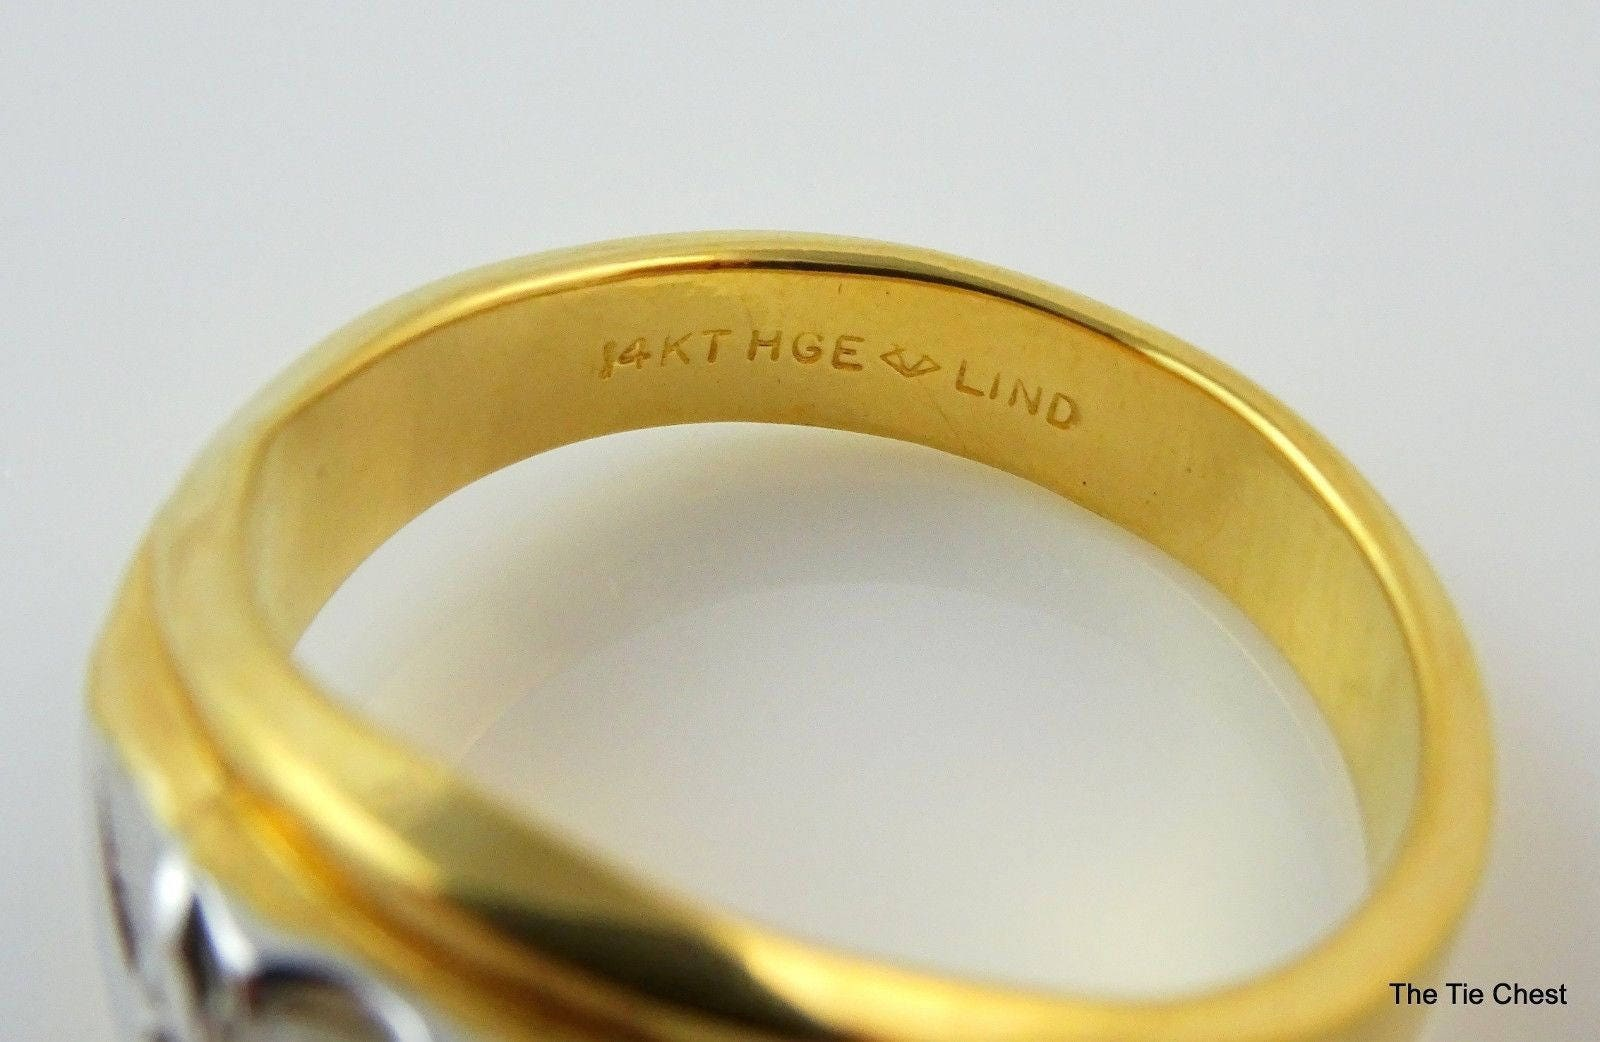 Perfect Mens Ring Size 13 14KT HGE Lind Two Tone Costume Jewelry VY43